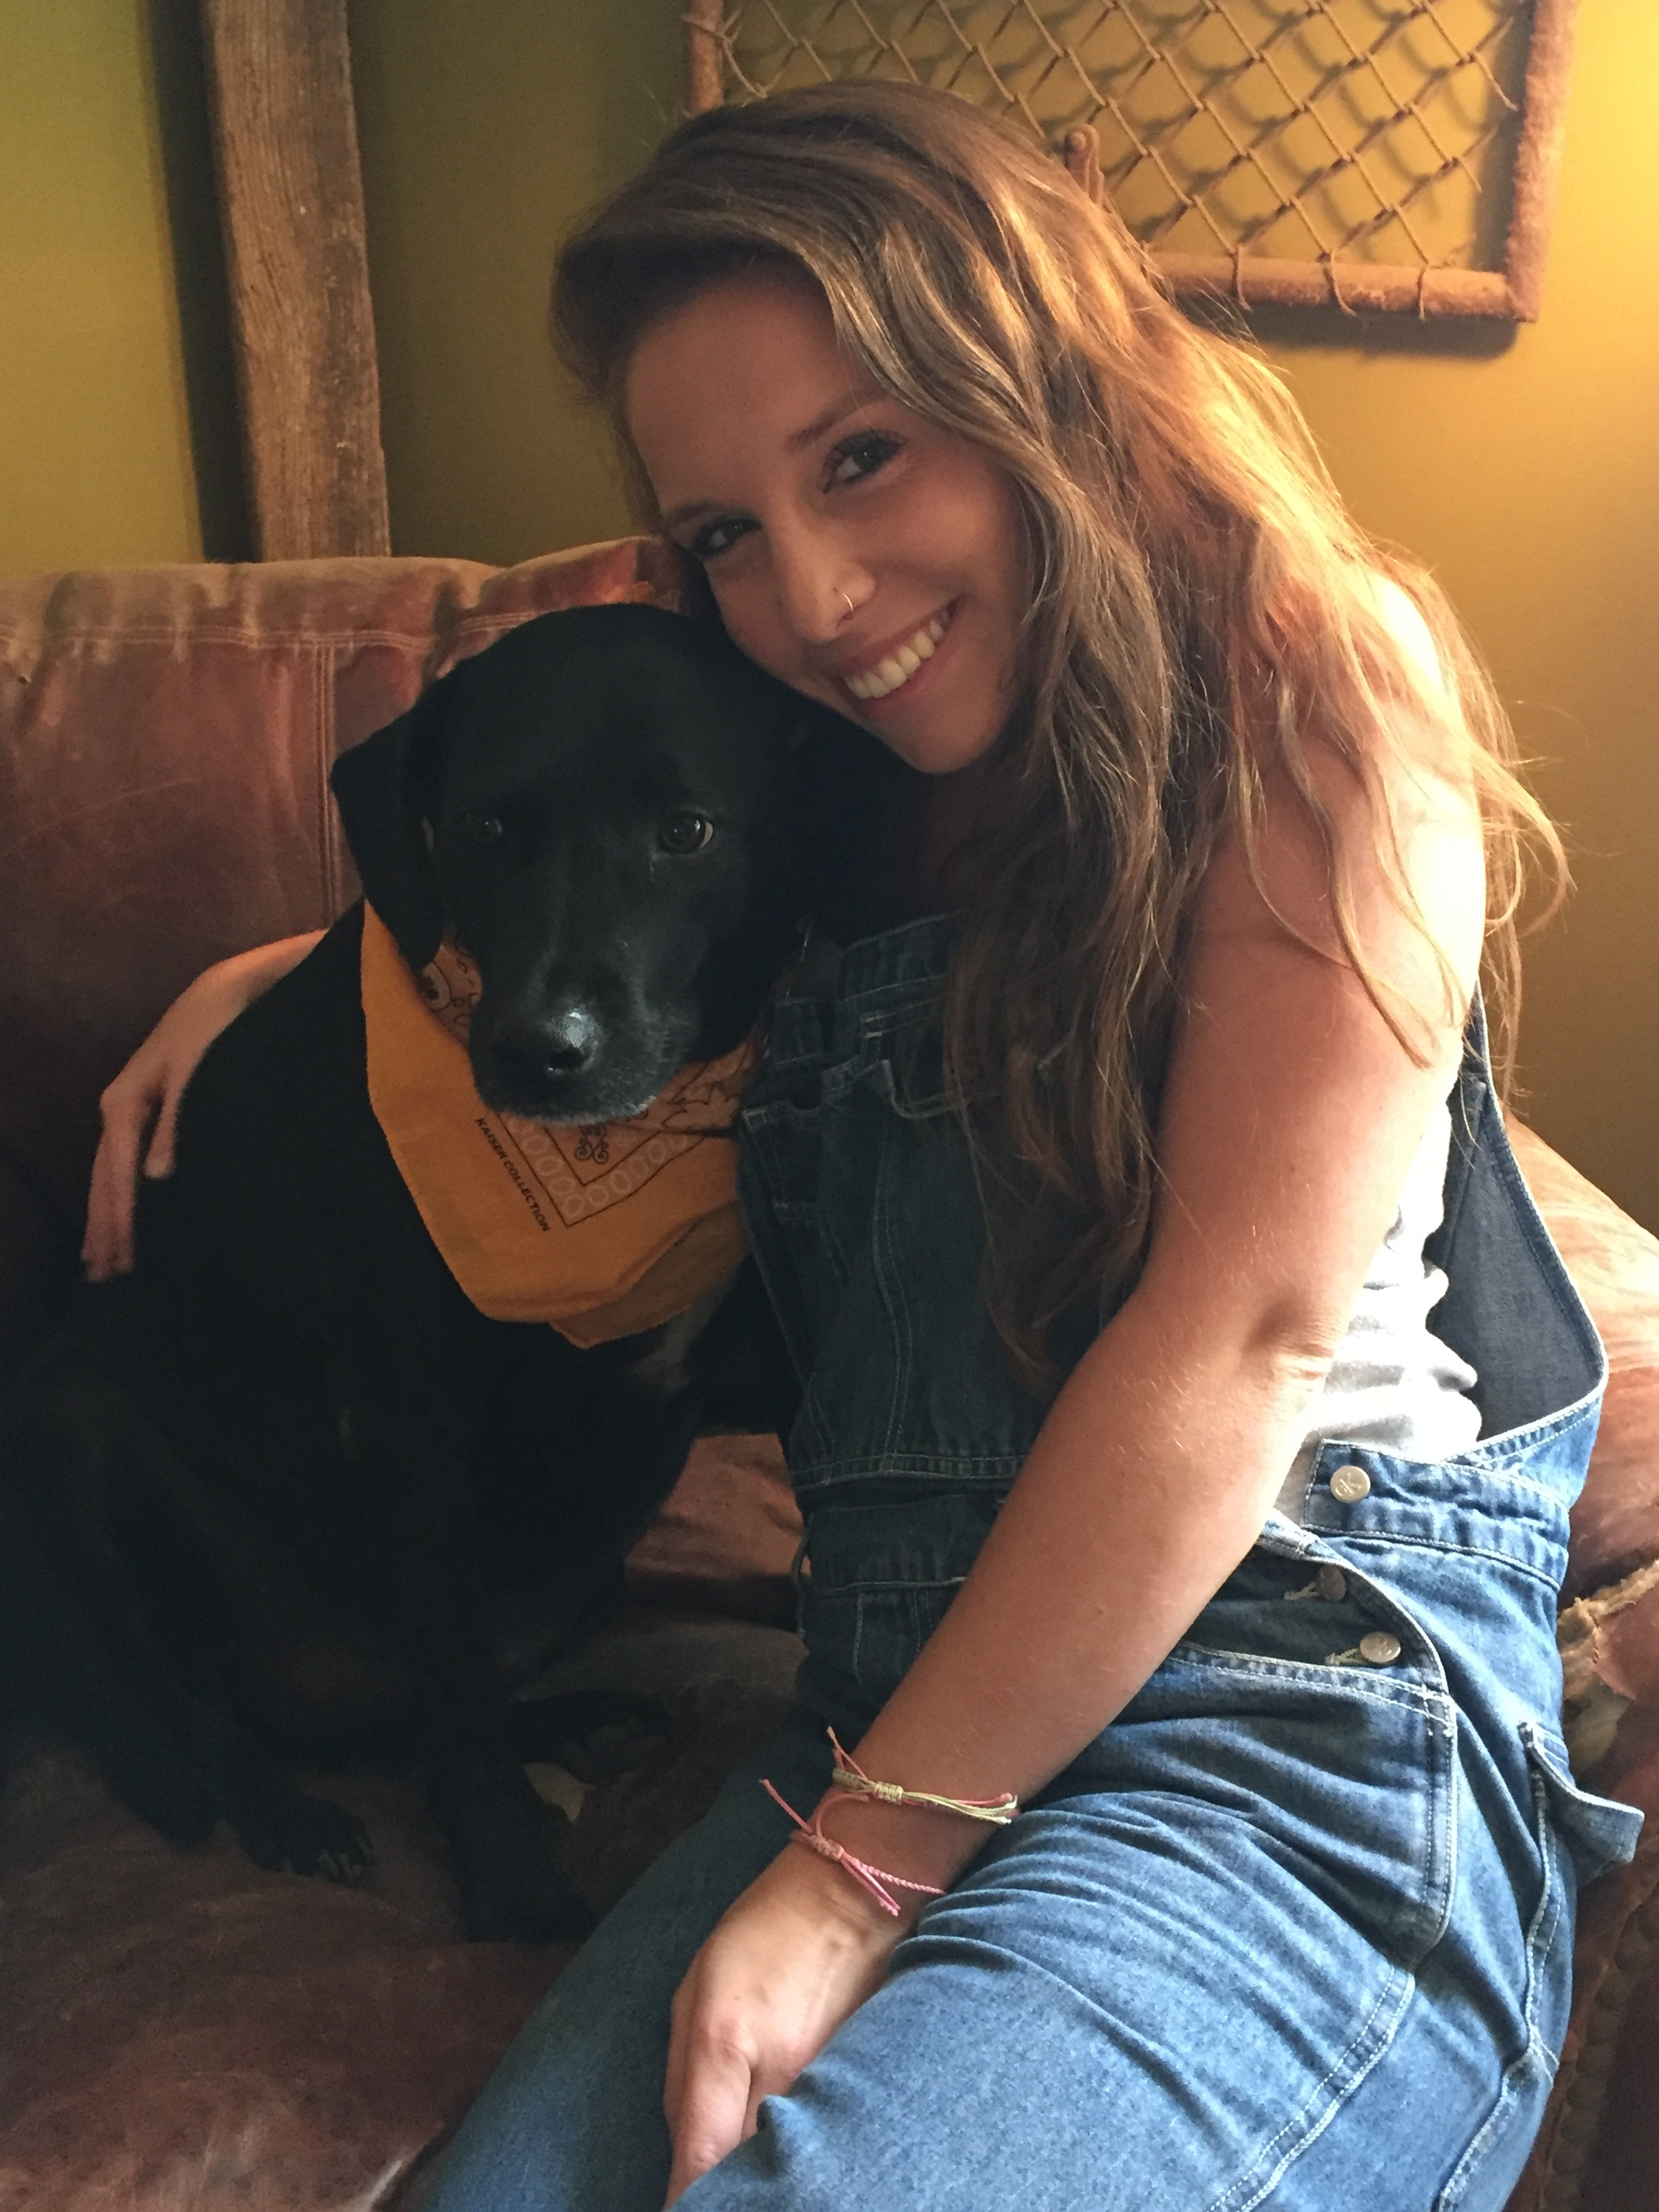 hannah vining - A graduate of Martin Methodist University, Hannah is our CSA Coordinator, Flat Bread Maker Extraordinaire, Dog Sitter, CSA Delivery Person and Mother to Poppy, the little pup in the picture.